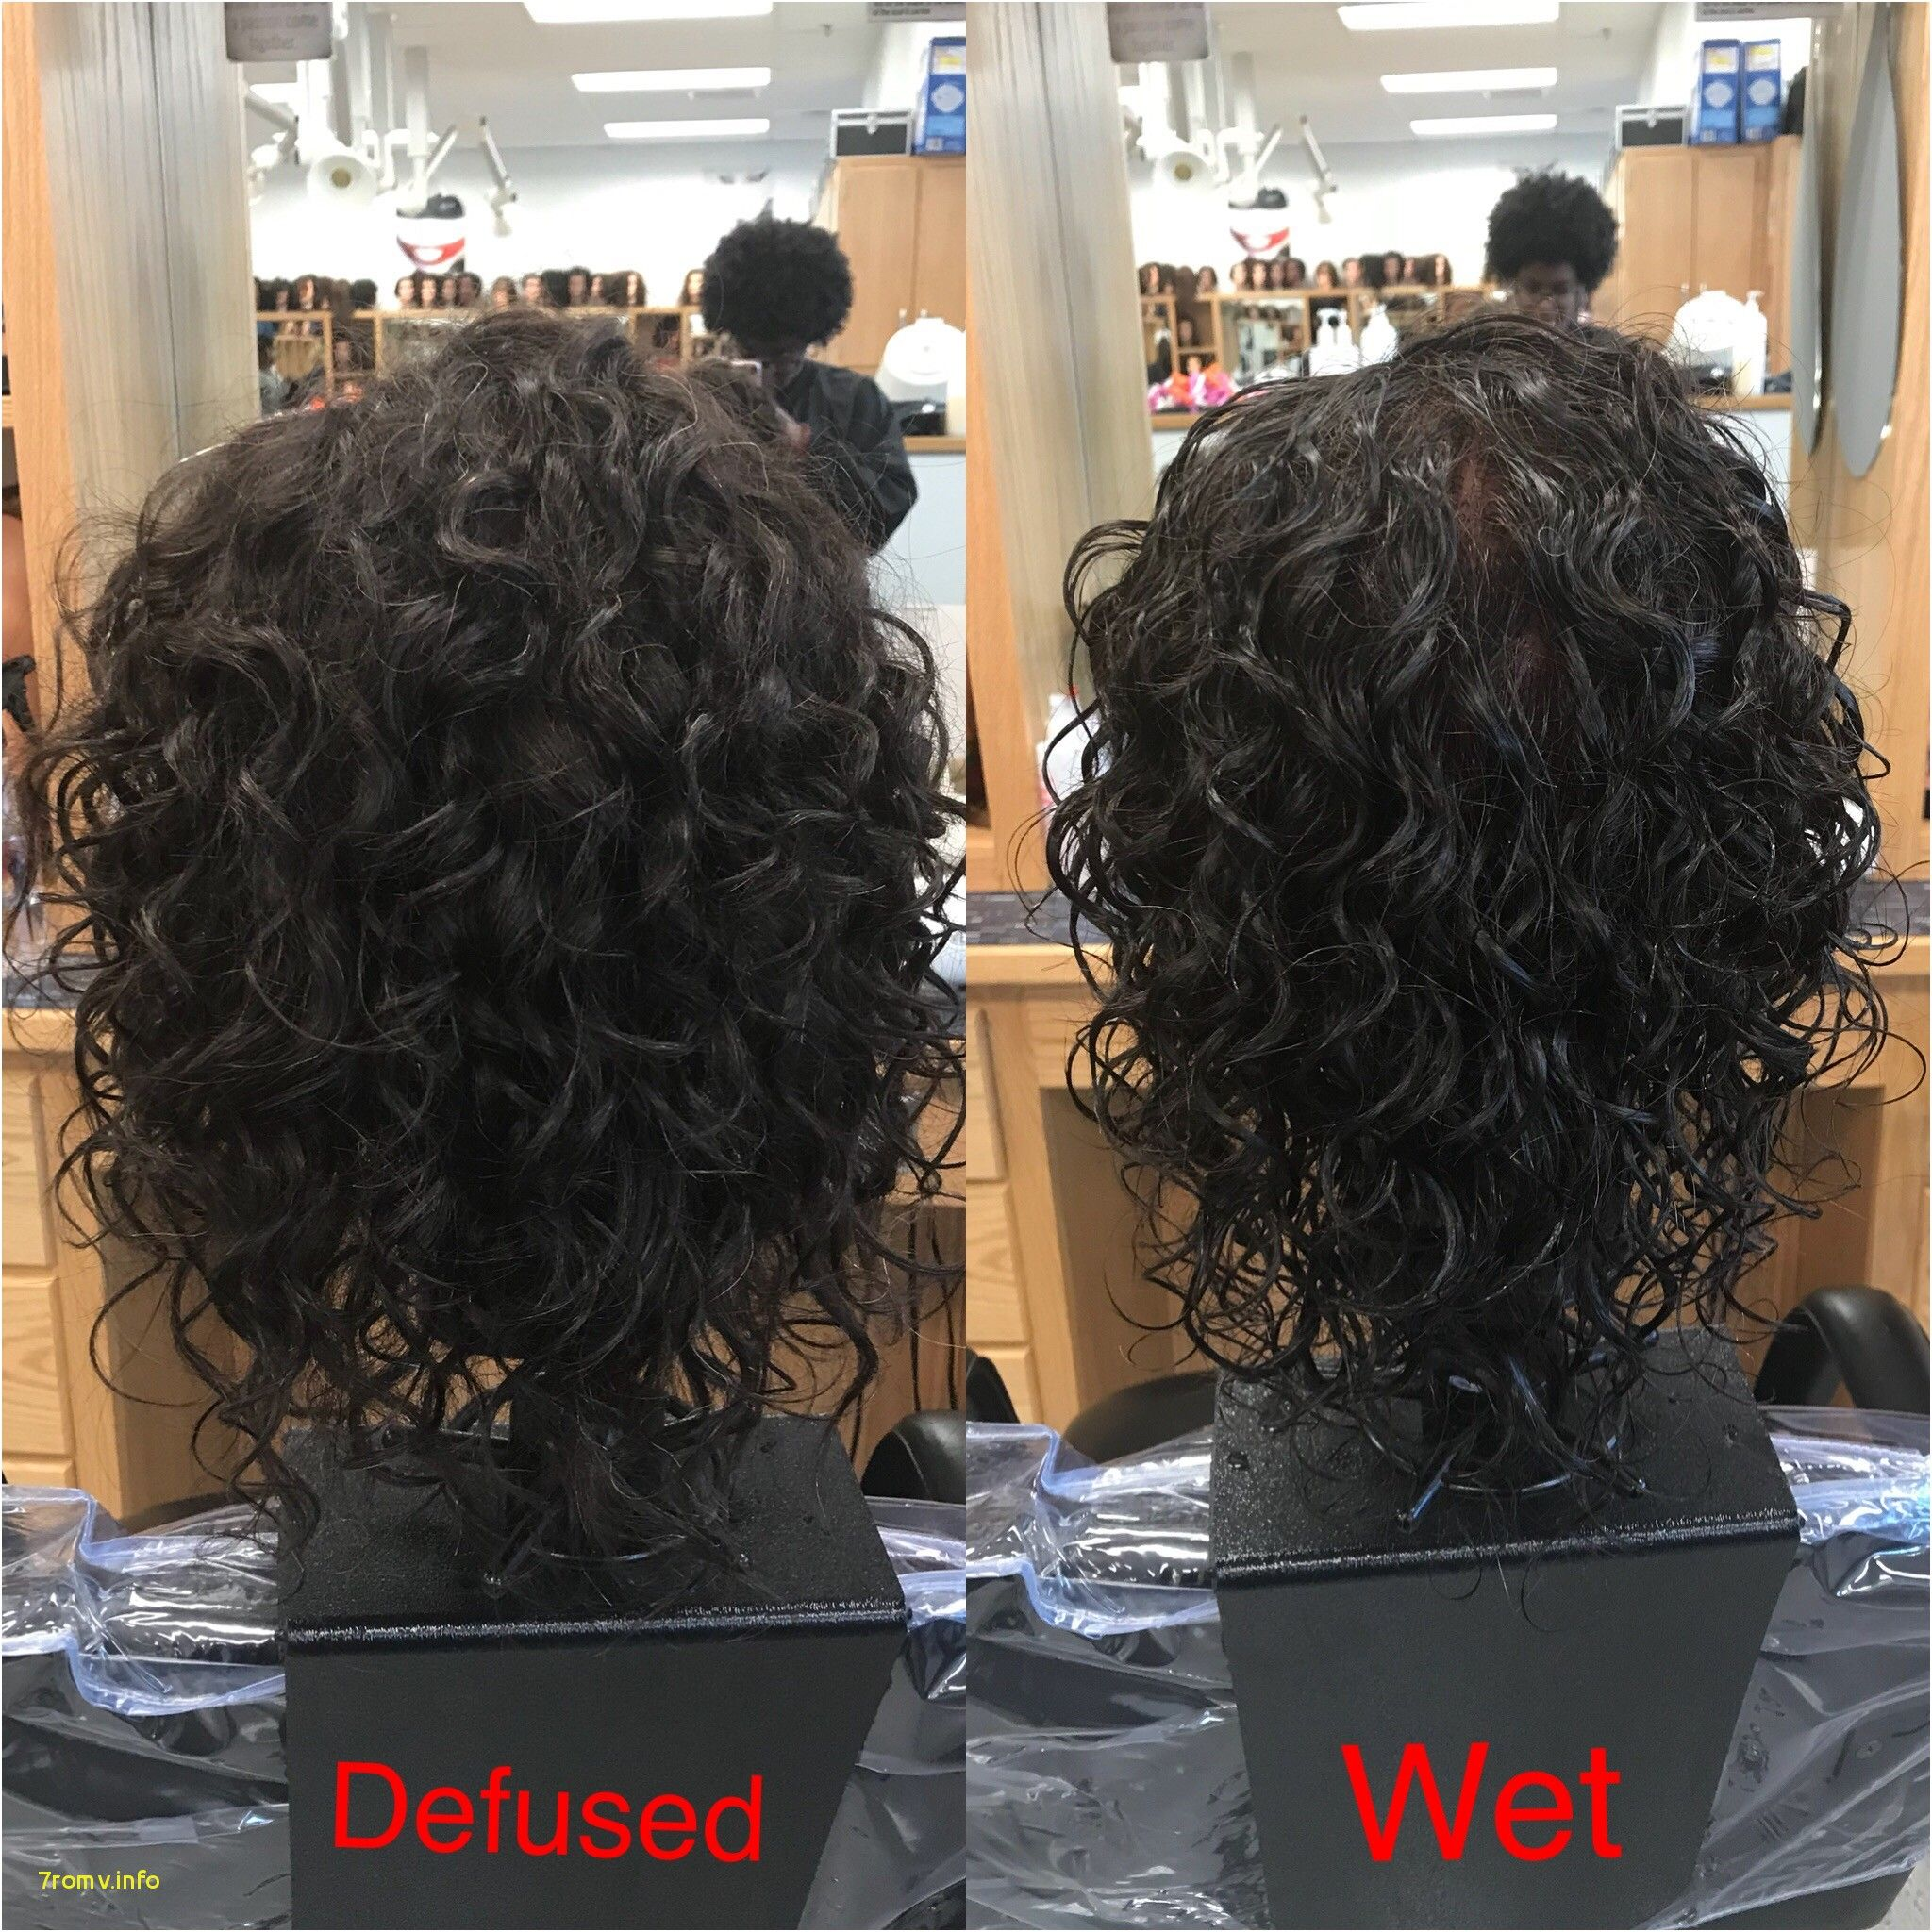 Spiral Perms Before And After Inspirational Root Perm Before And After Long Hair Perm Permed Hairstyles Spiral Perm